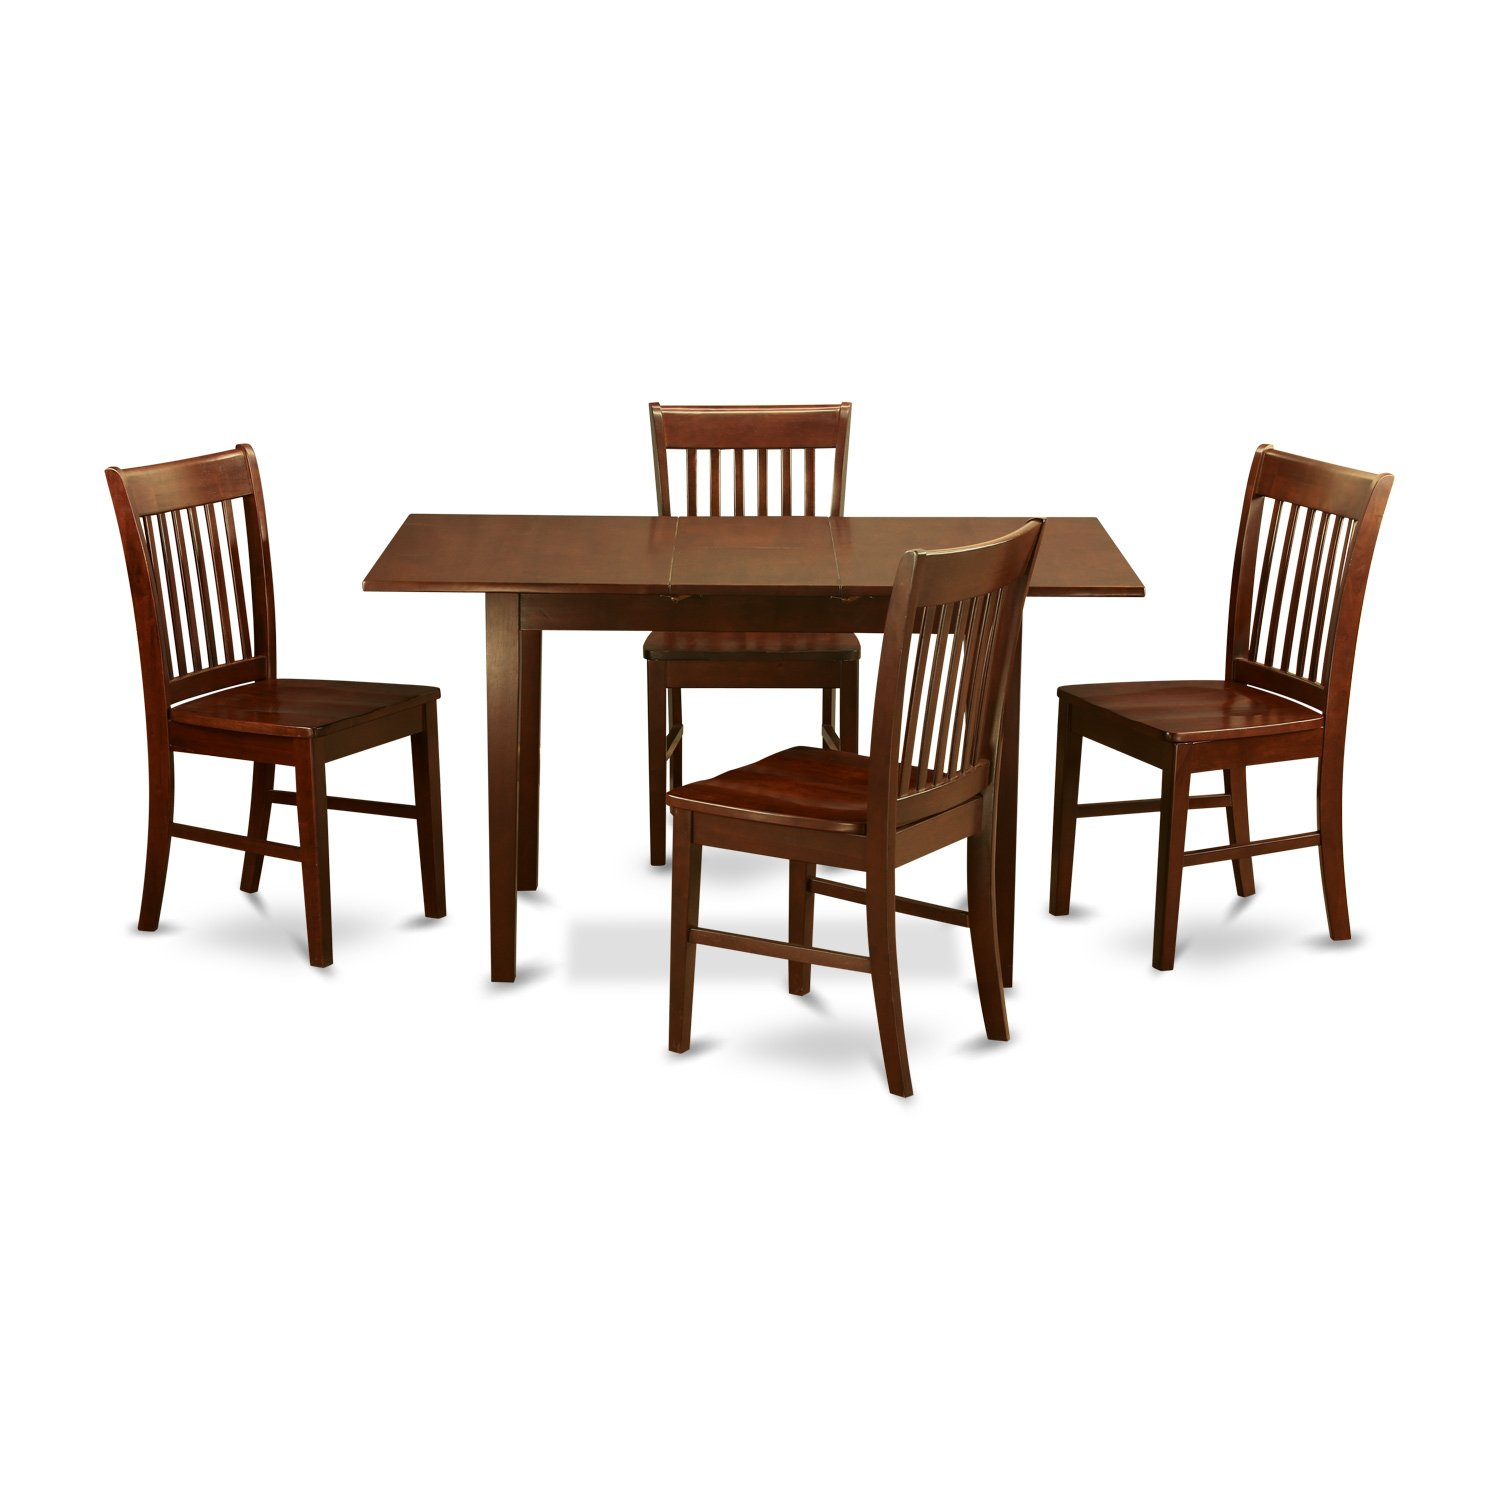 East West Furniture NOFK5-MAH-W 5-Piece Kitchen Table Set, Mahogany Finish by East West Furniture